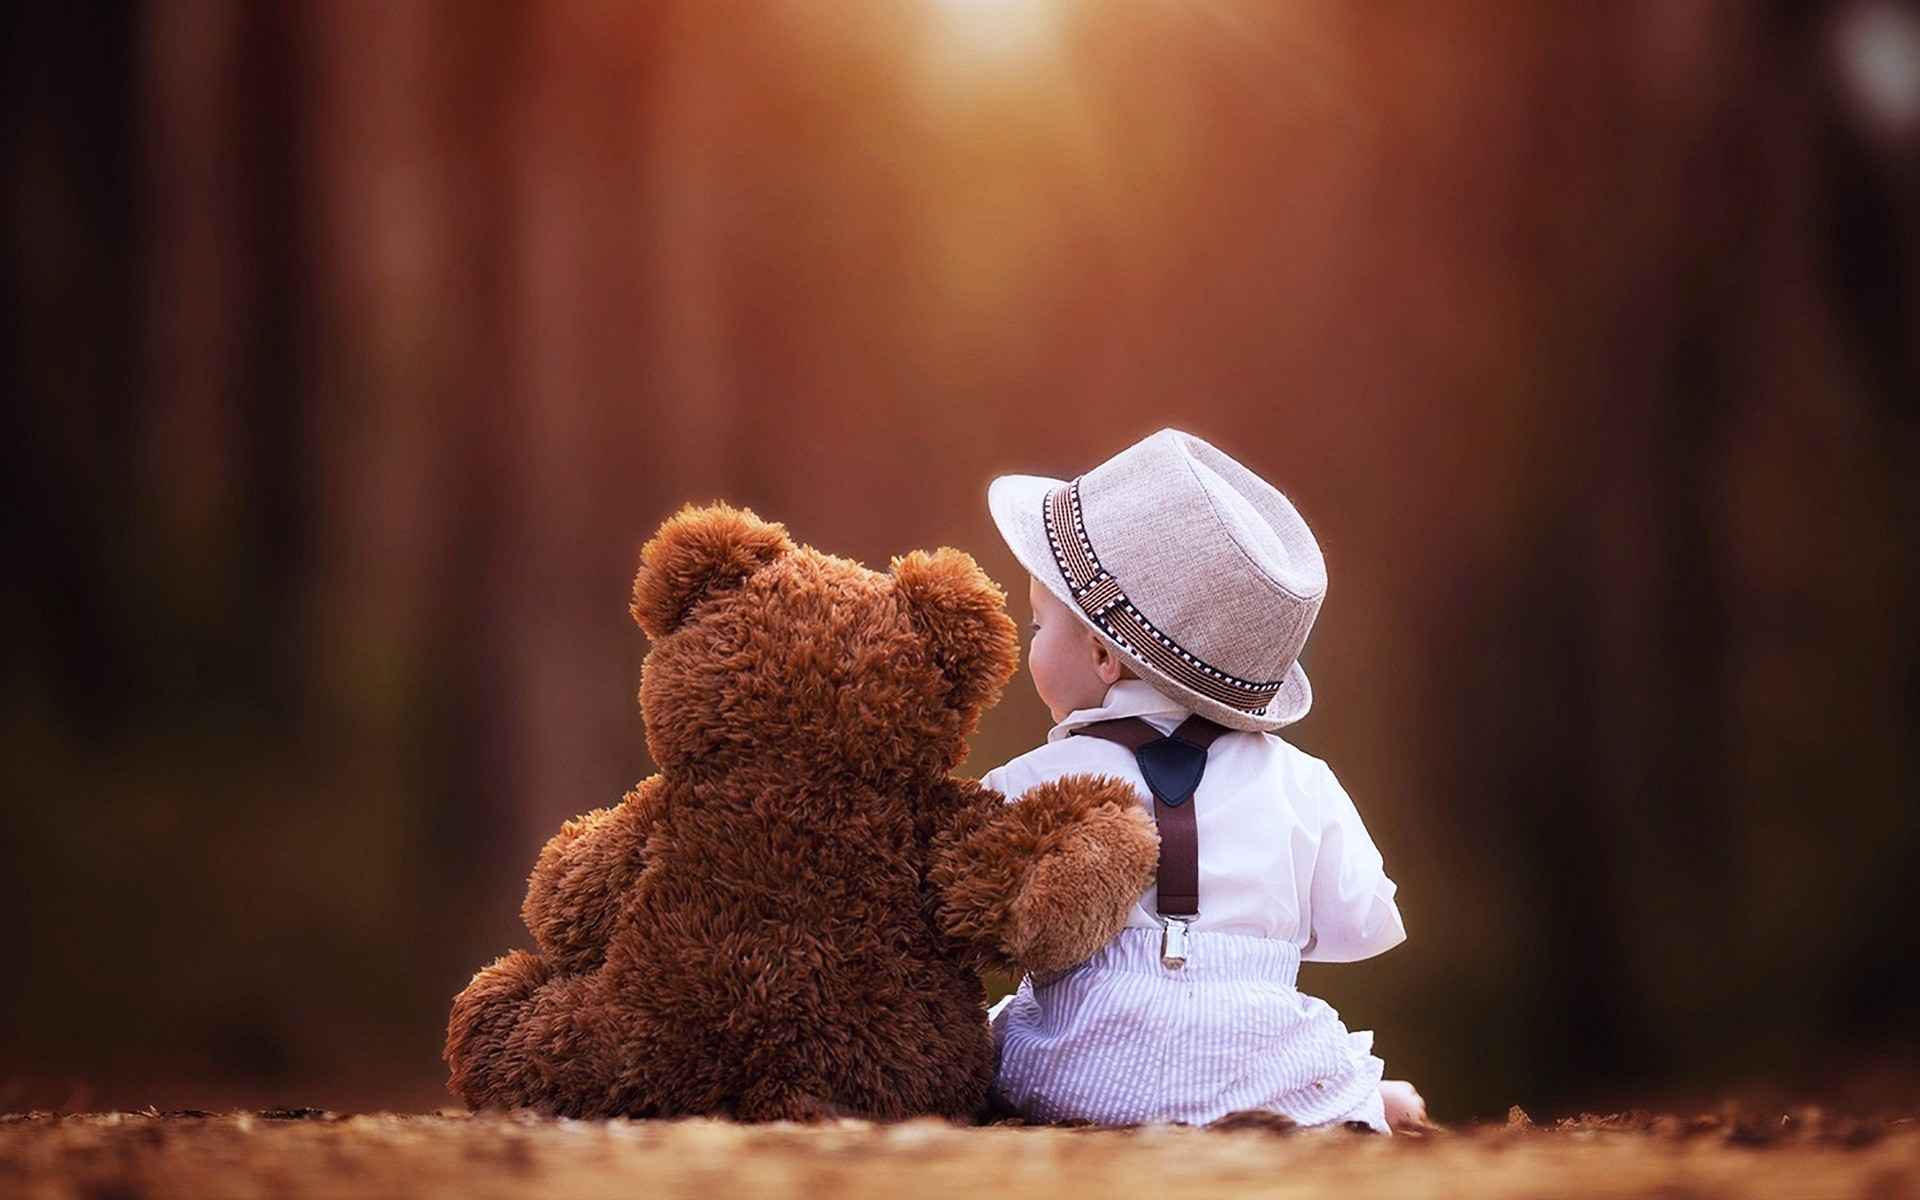 Love Teddy Bear Hd Wallpaper : cute Teddy Bear Wallpapers ??